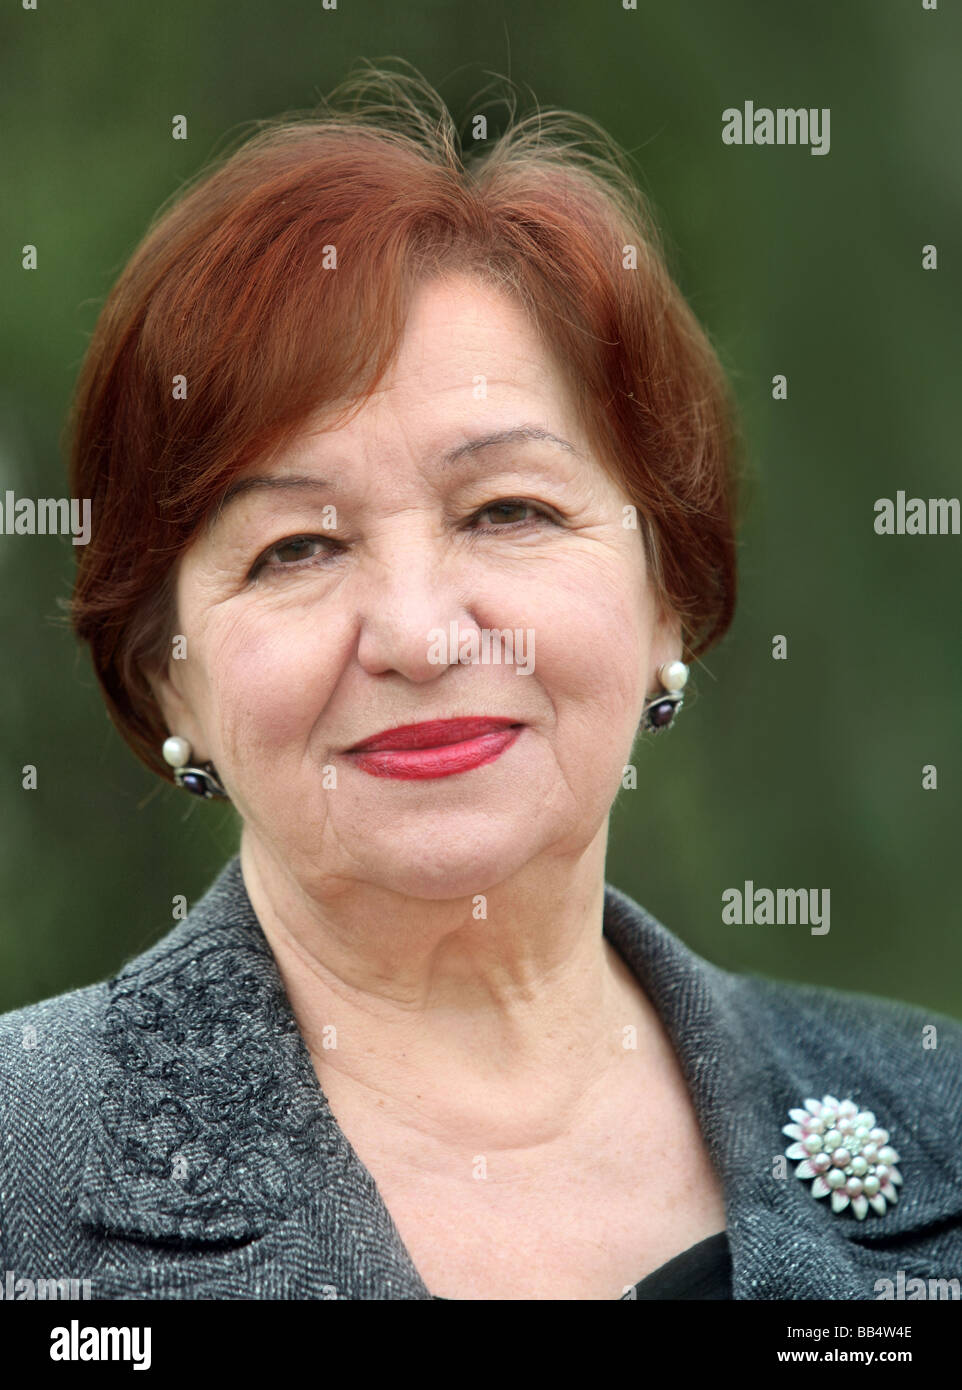 Portrait of a smiling woman in her seventies - Stock Image